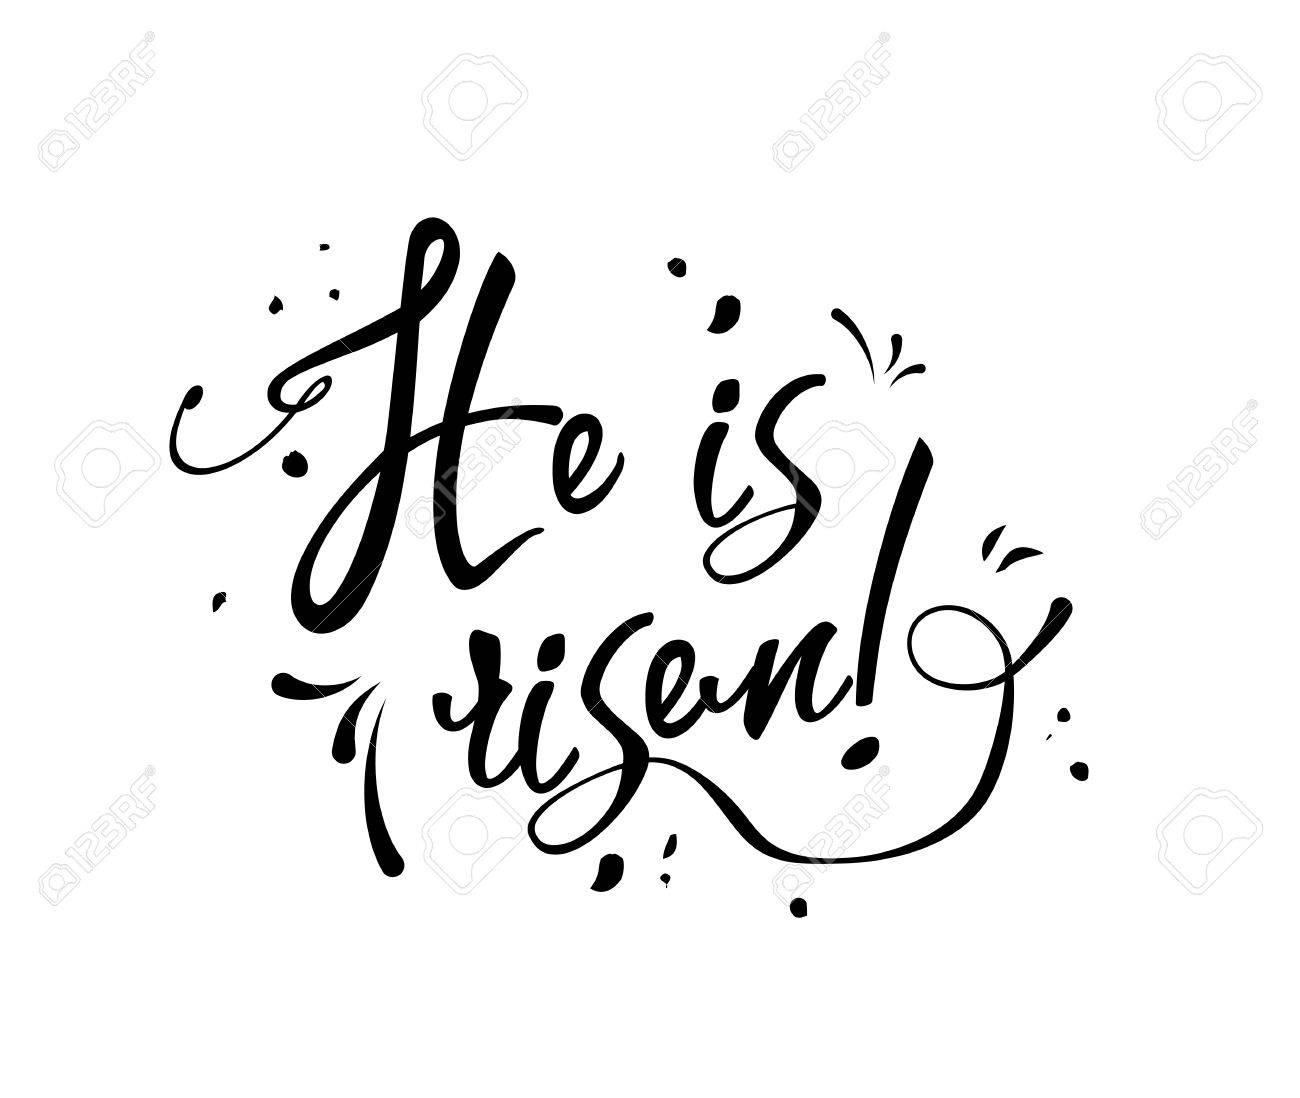 hight resolution of text he is risen black on white background illustration stock vector 74303261